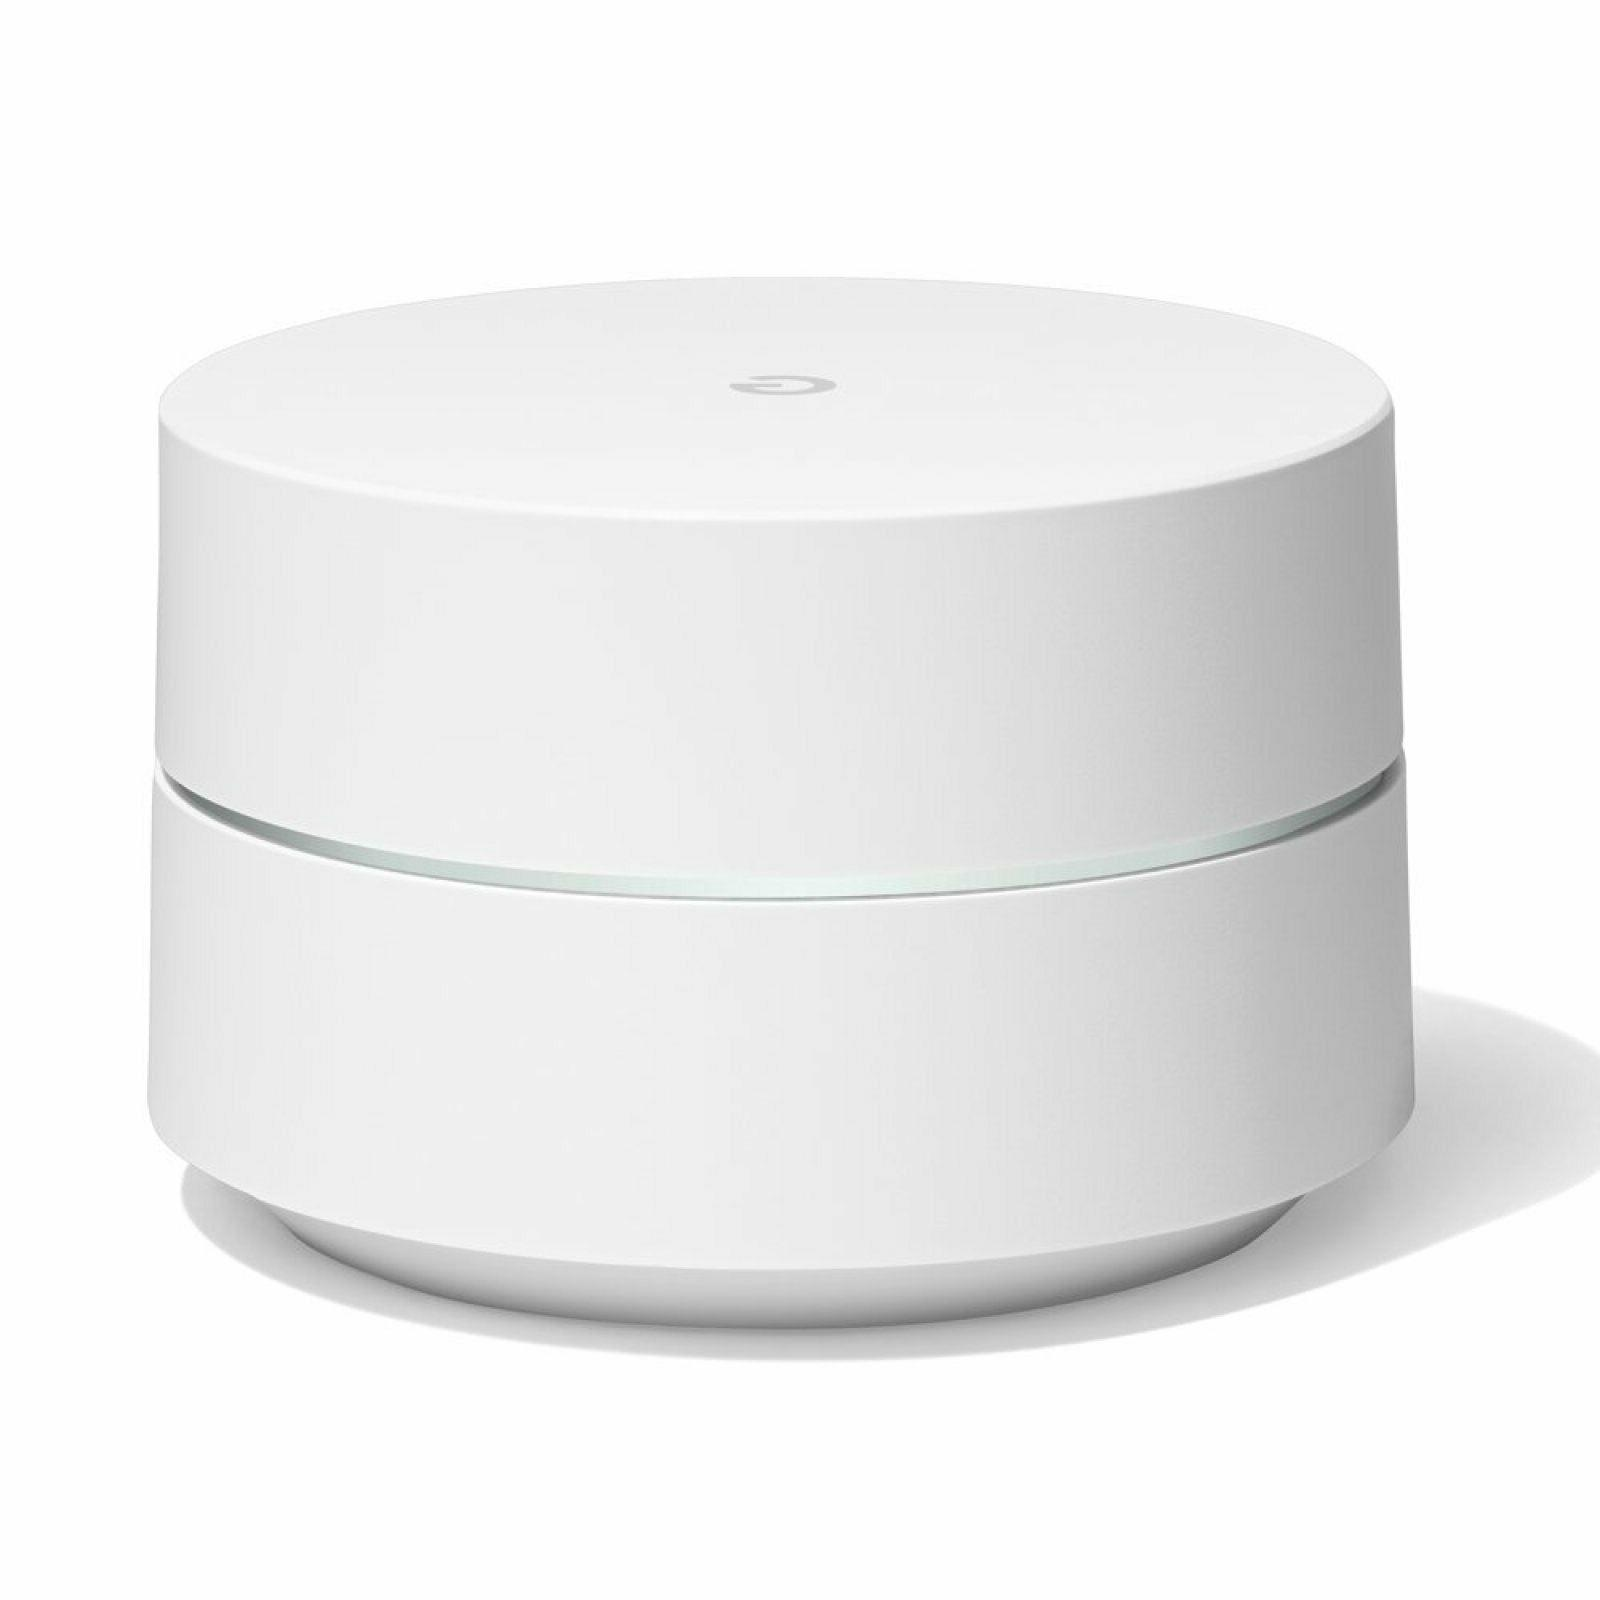 Google Wifi Router Replacement Whole Coverage Wifirouteri